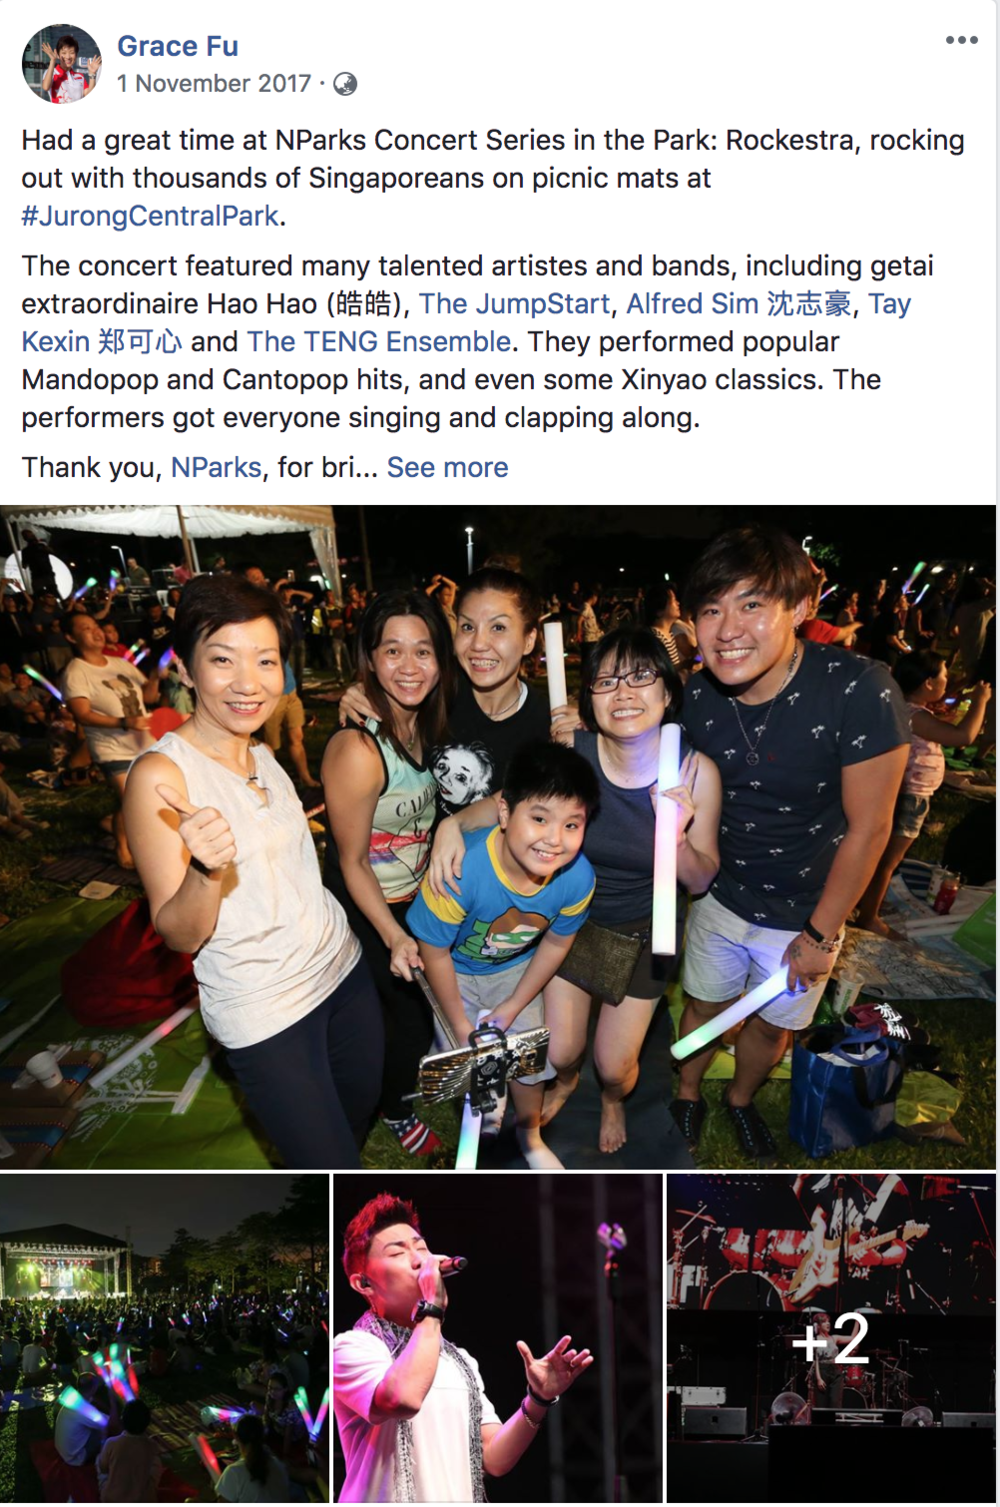 Editorial Content for Singapore's Minister for Culture, Community and Youth, Grace Fu.